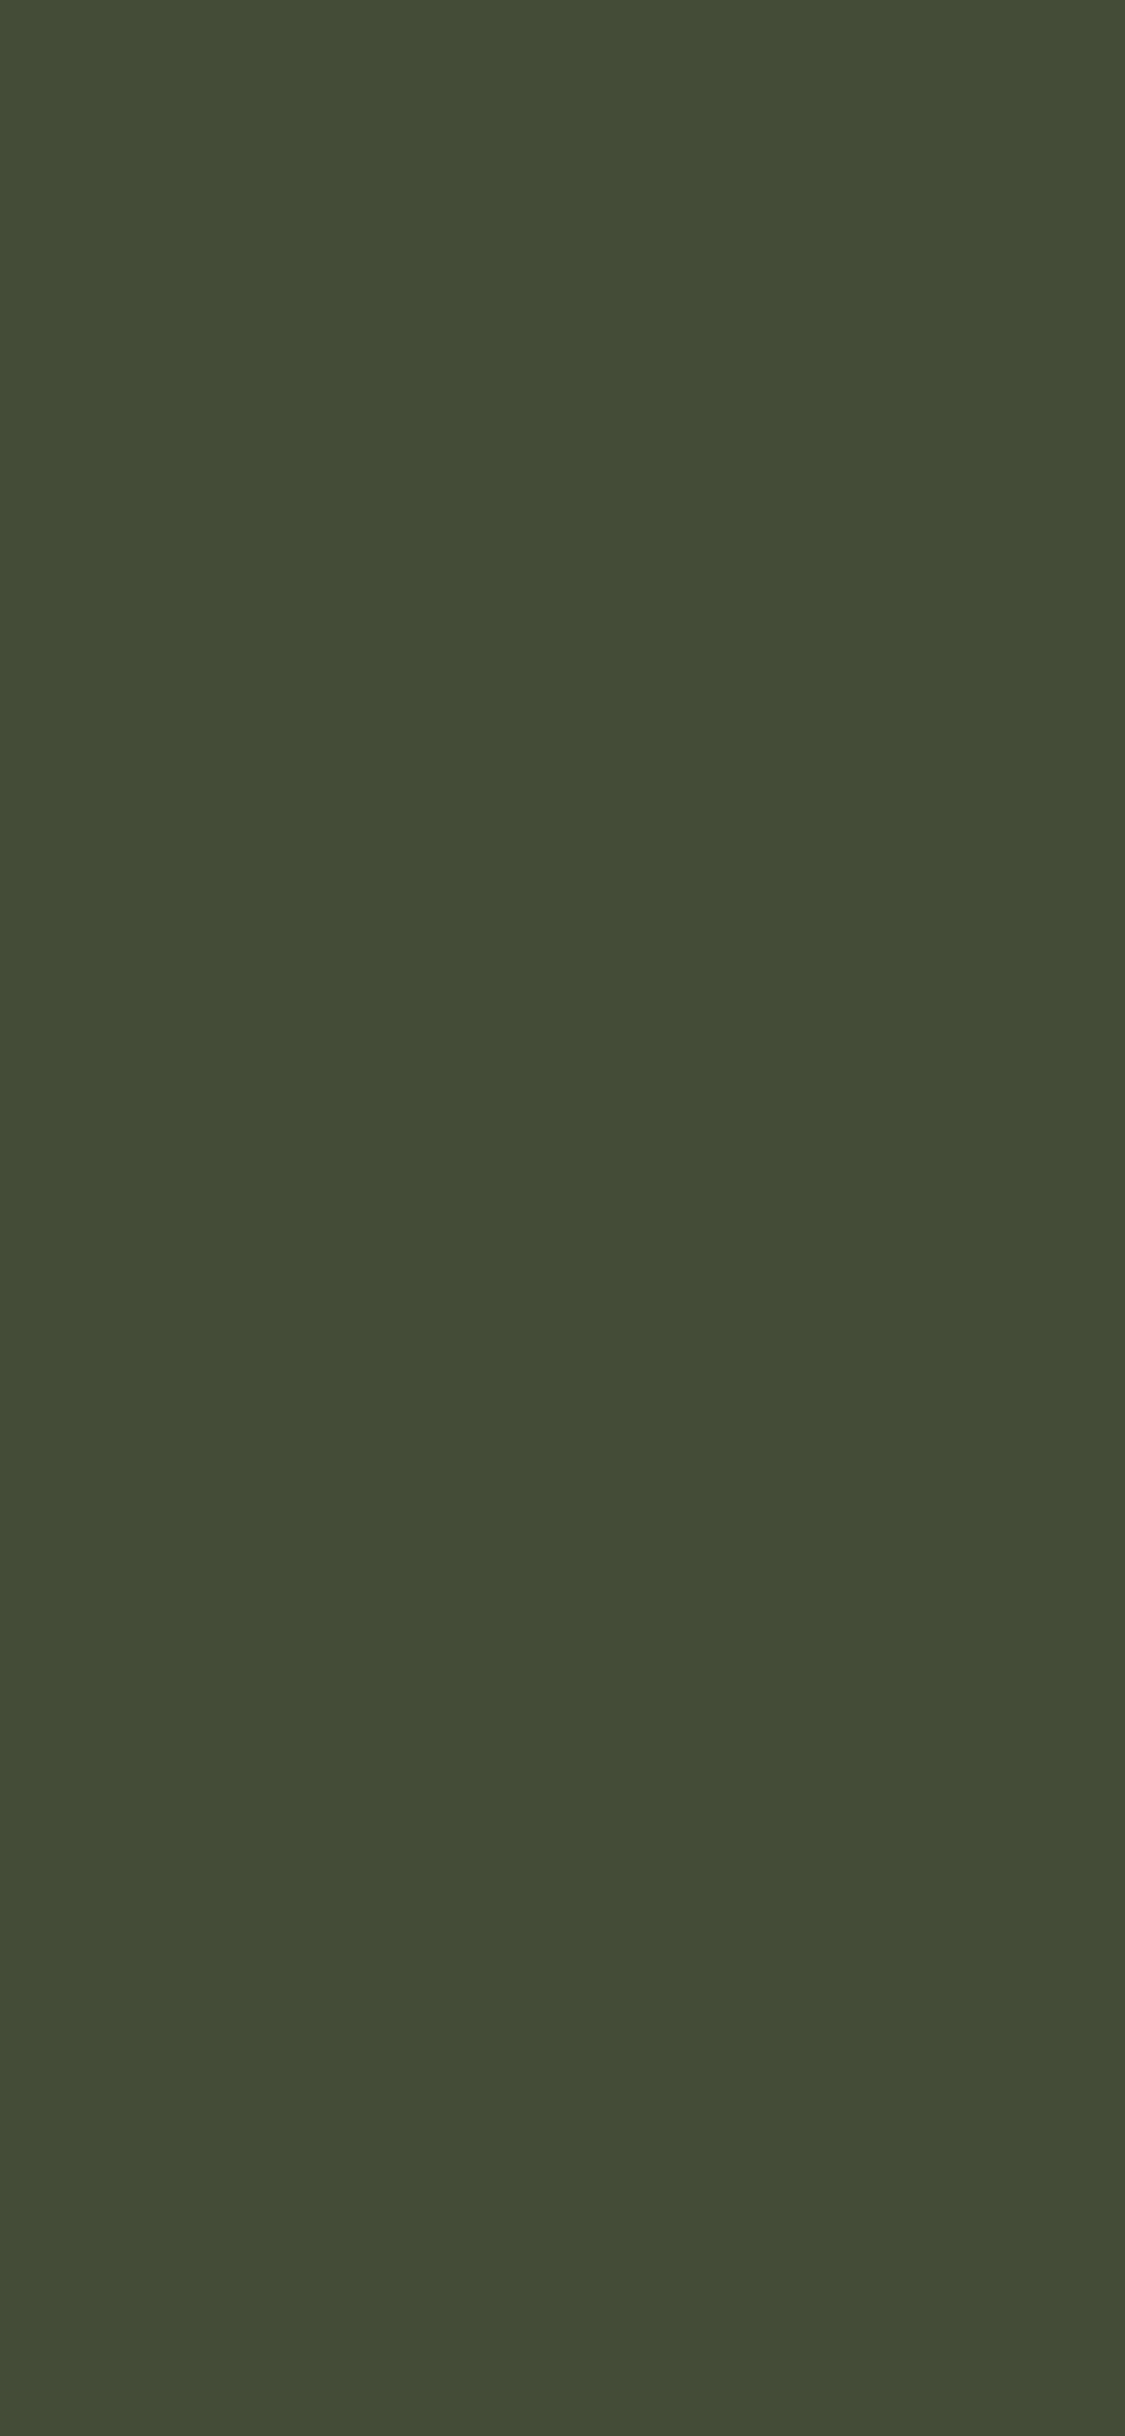 1125x2436 Rifle Green Solid Color Background